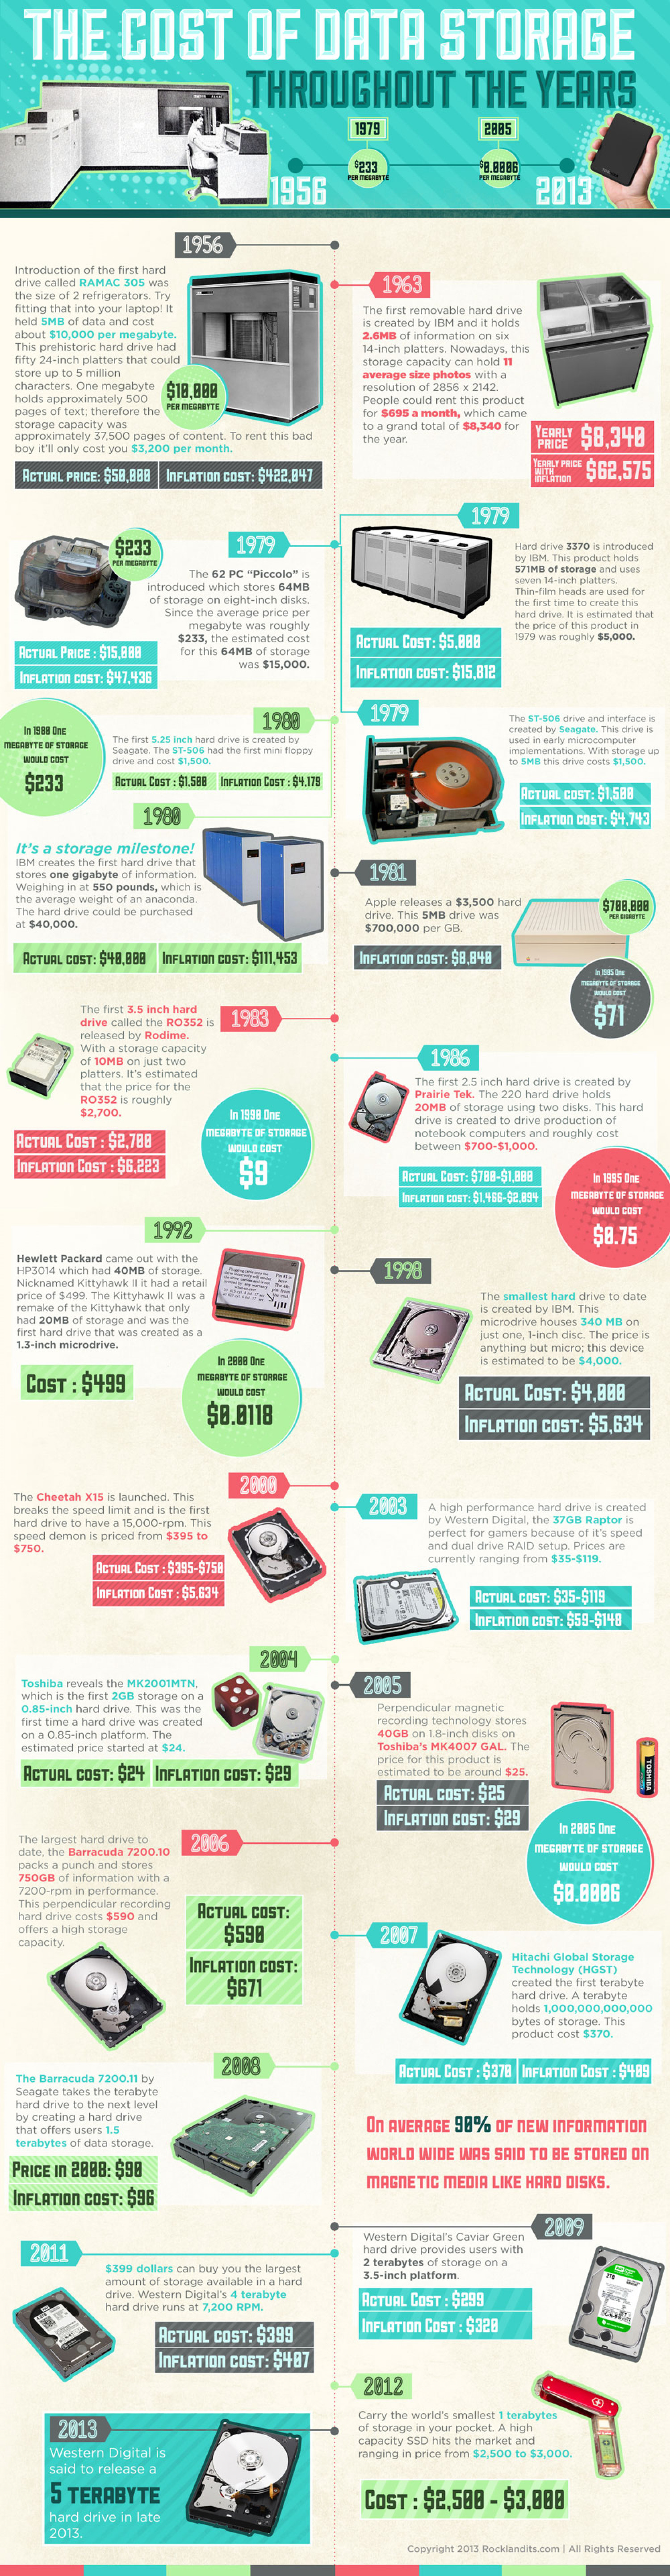 Cost of Data Storage Through the Years Infographic